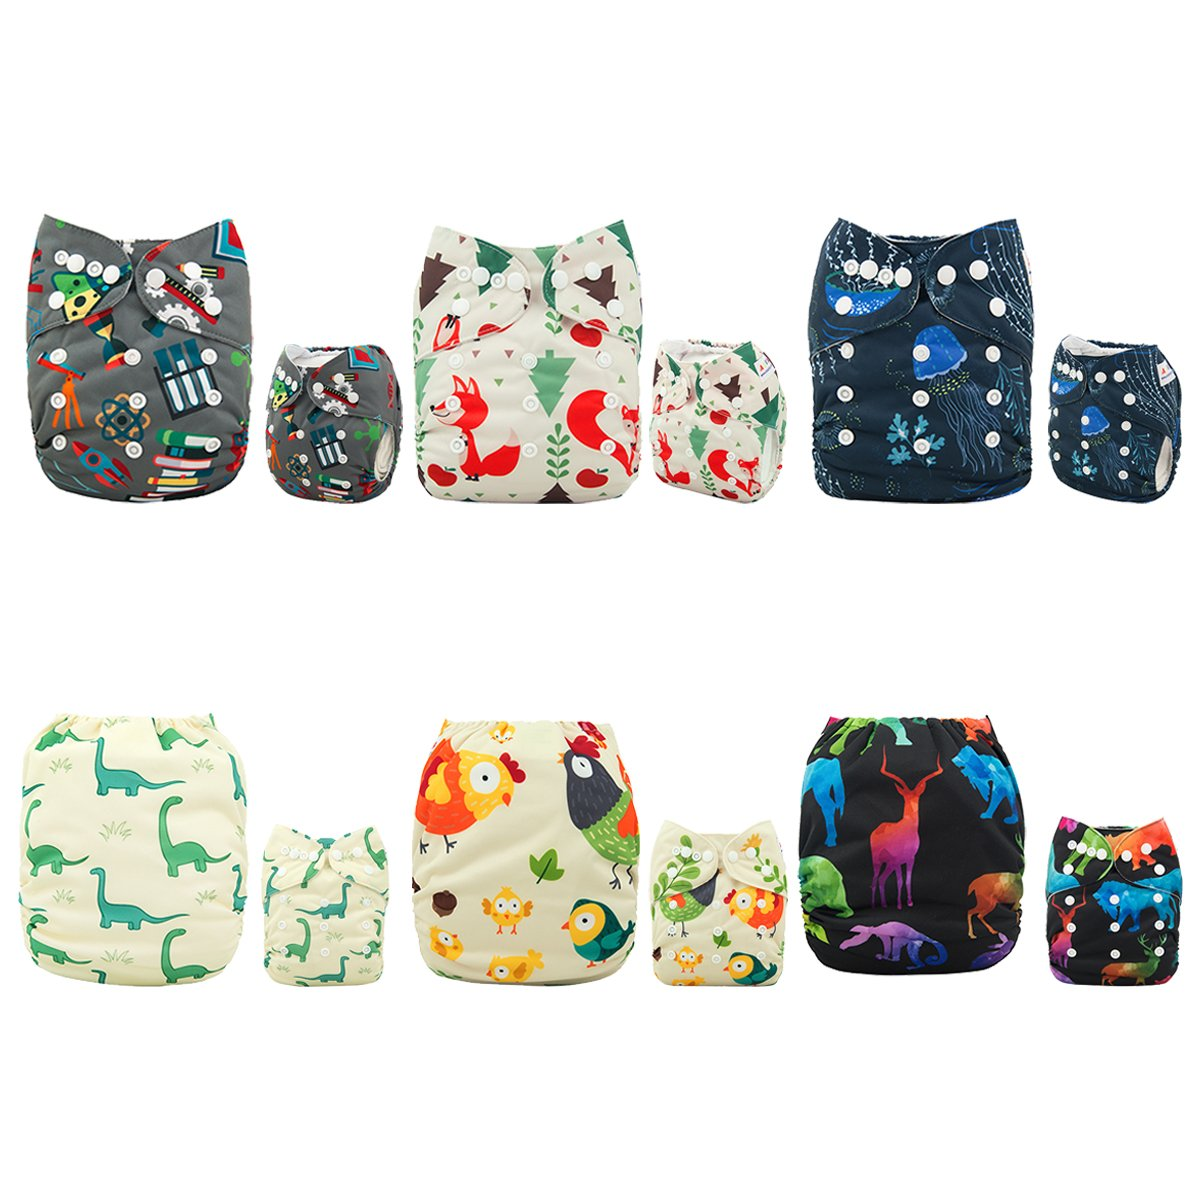 ALVABABY Baby Cloth Diapers One Size Adjustable Washable Reusable for Baby Girls and Boys 6 Pack + 12 Inserts 6DM52